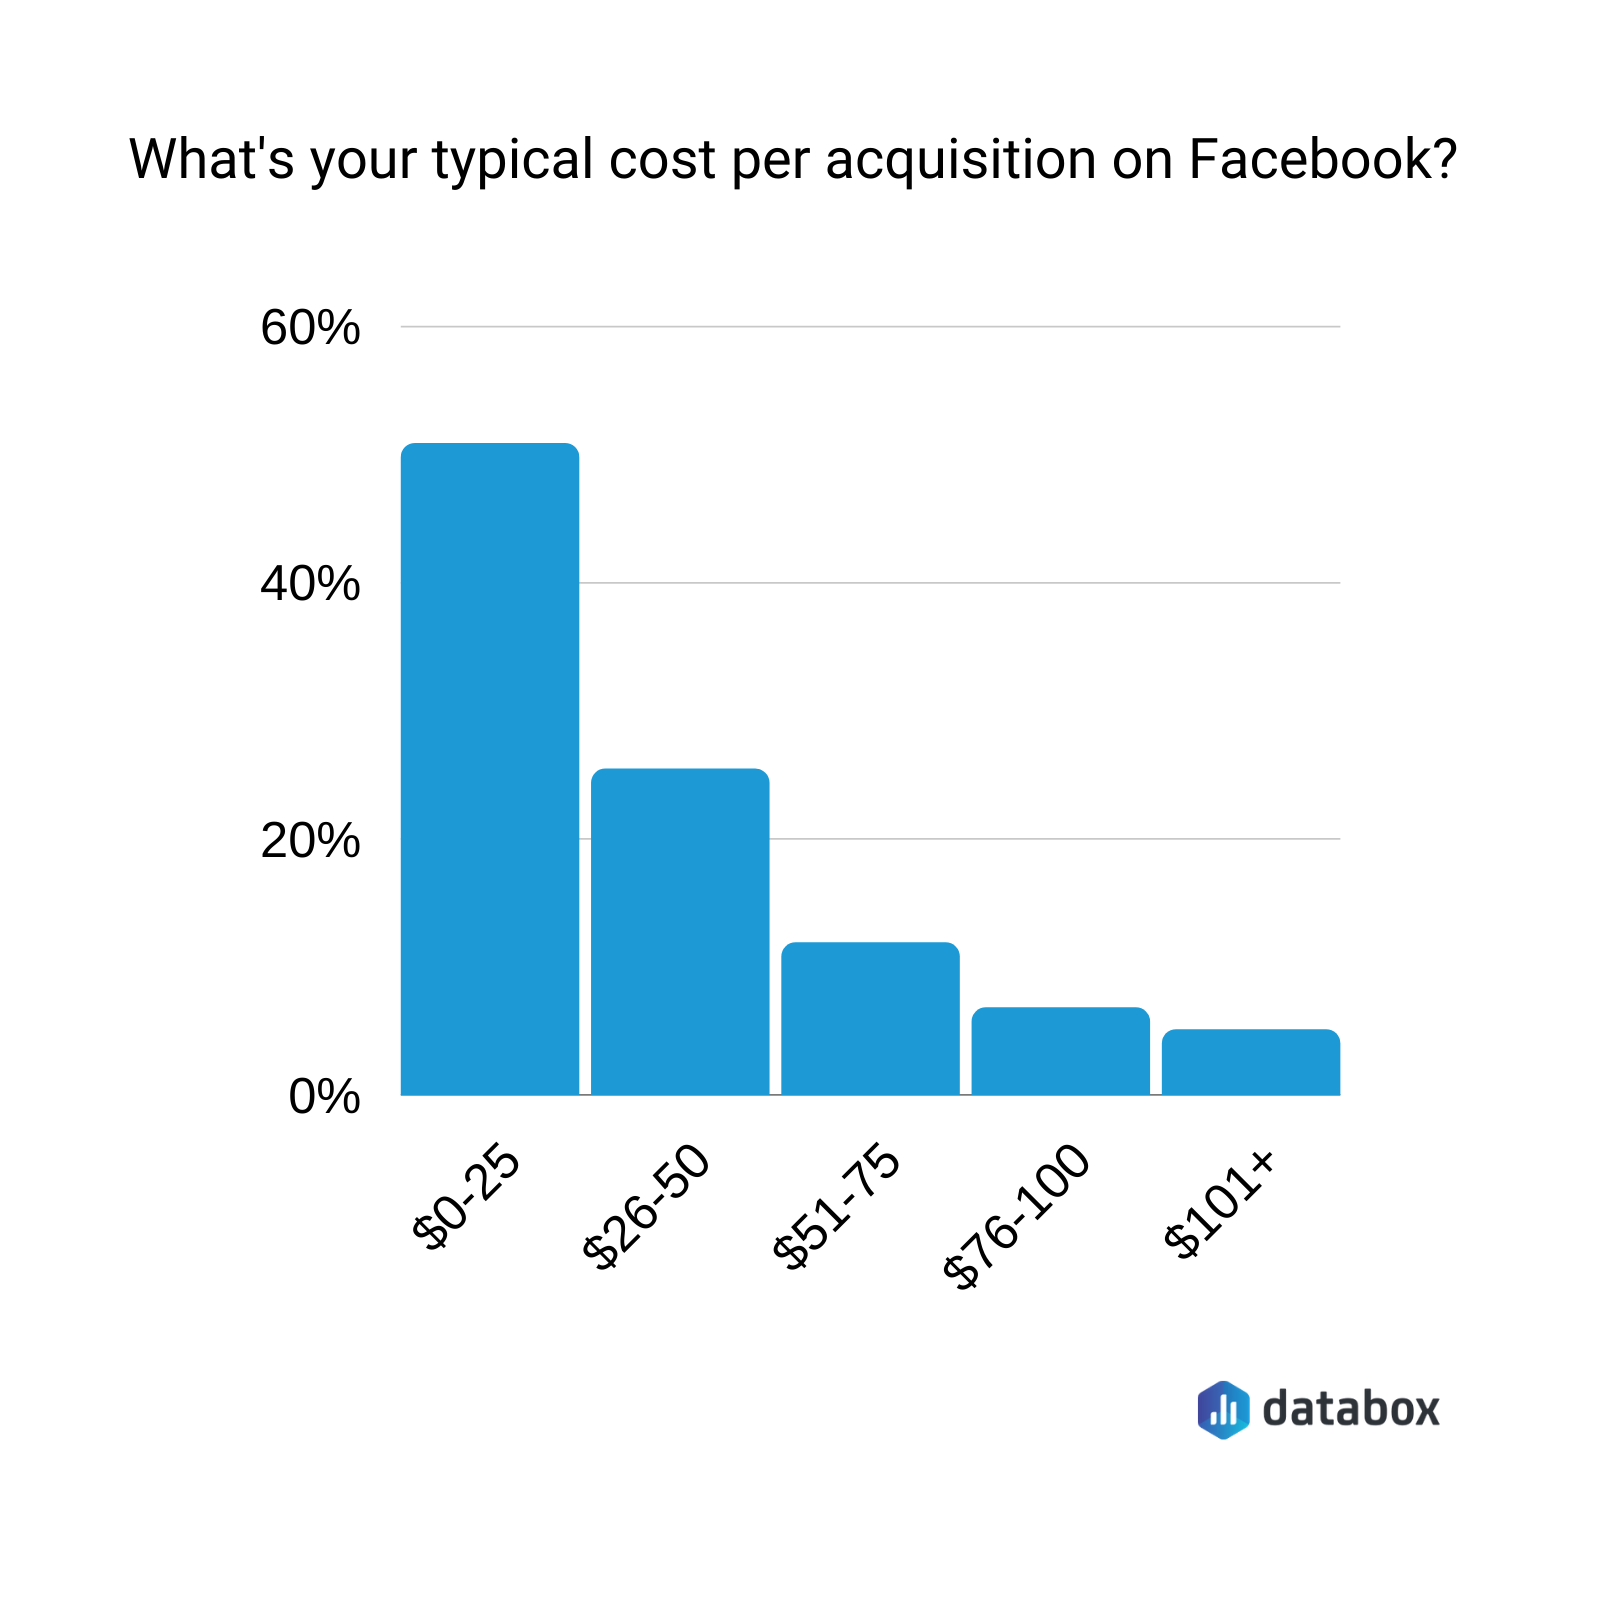 What's a typical cost per acquisition on Facebook?